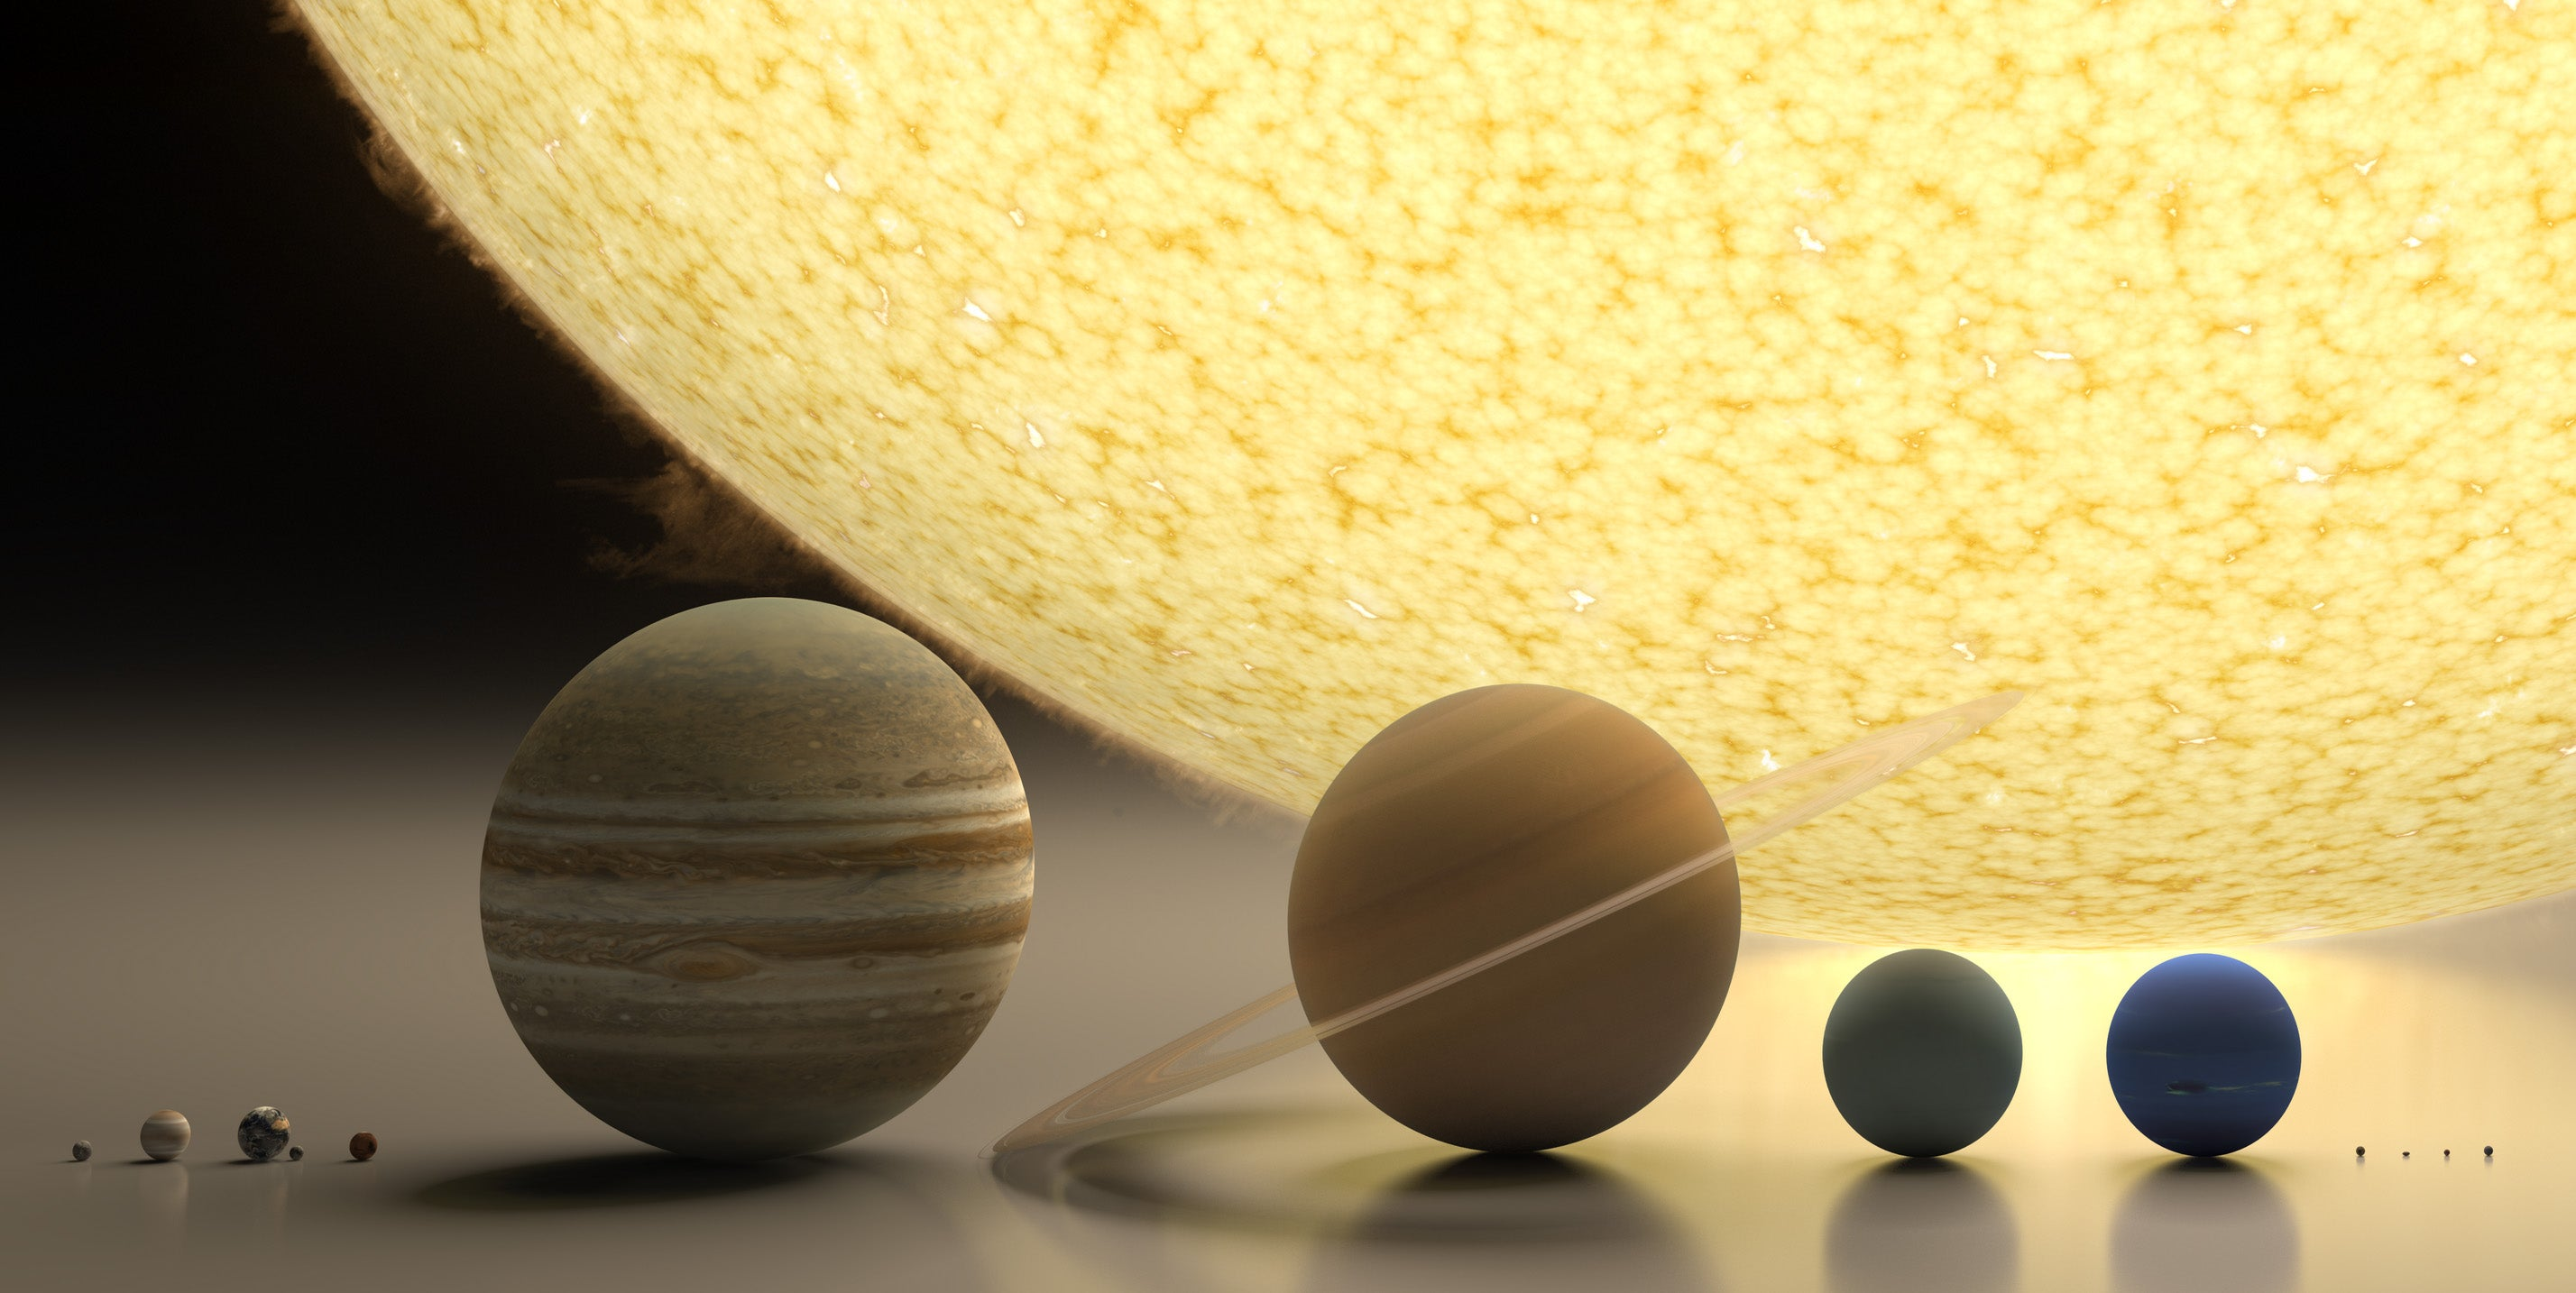 Spectacular rendering of the solar system to scale